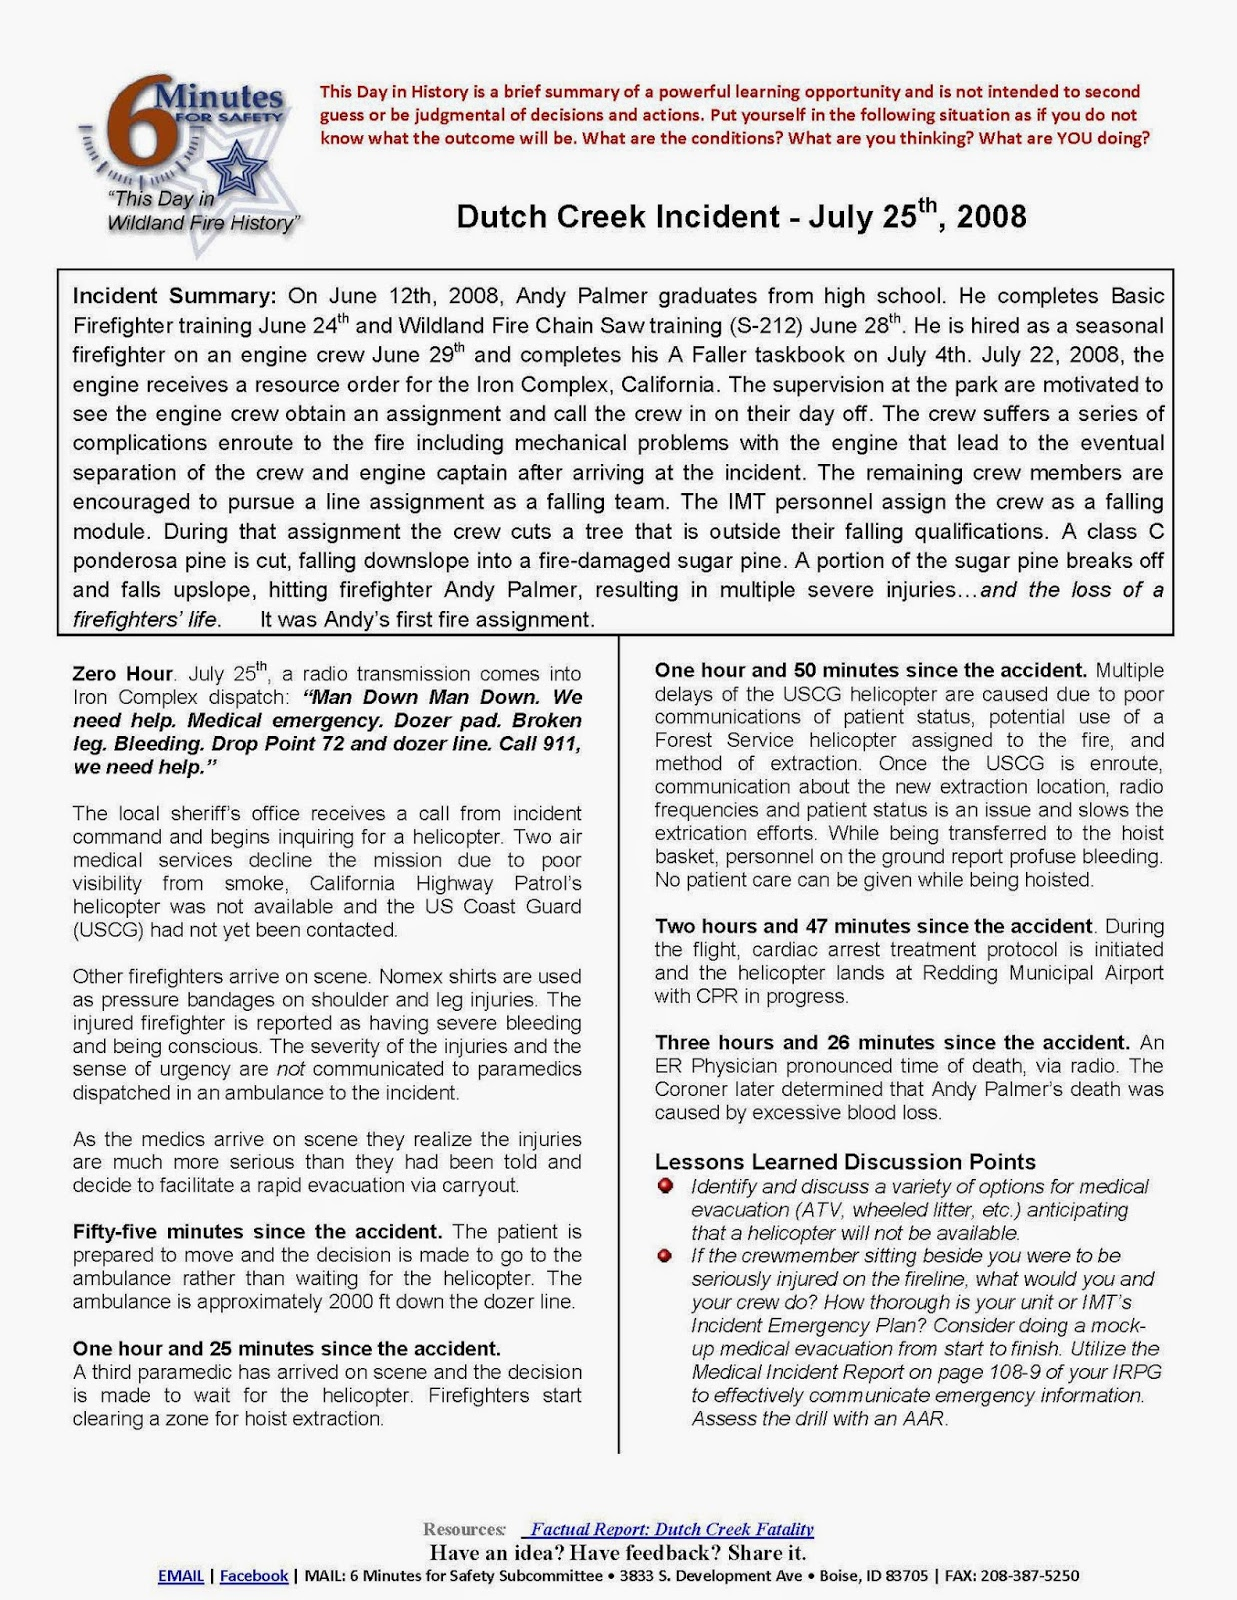 6 Minutes for Safety - Dutch Creek